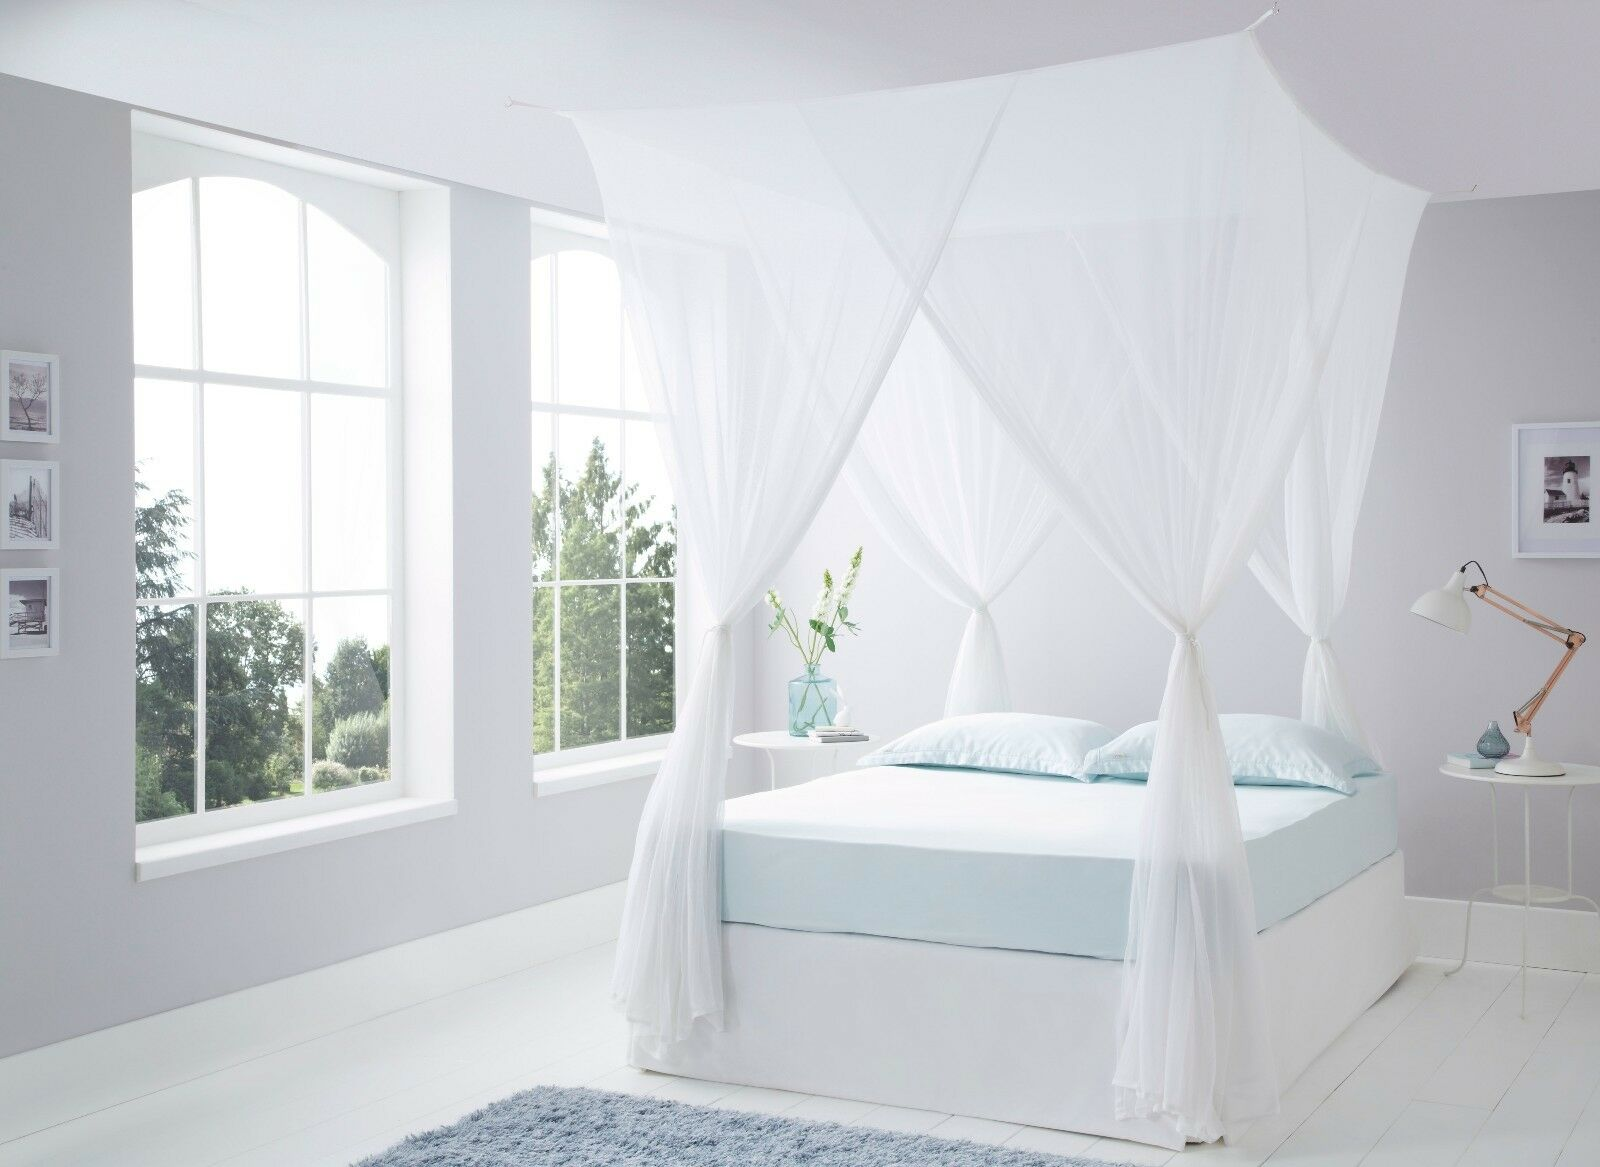 Luxurious Cotton Box Mosquito Net Bed Canopy Super King Größe 100% Quality Cotton